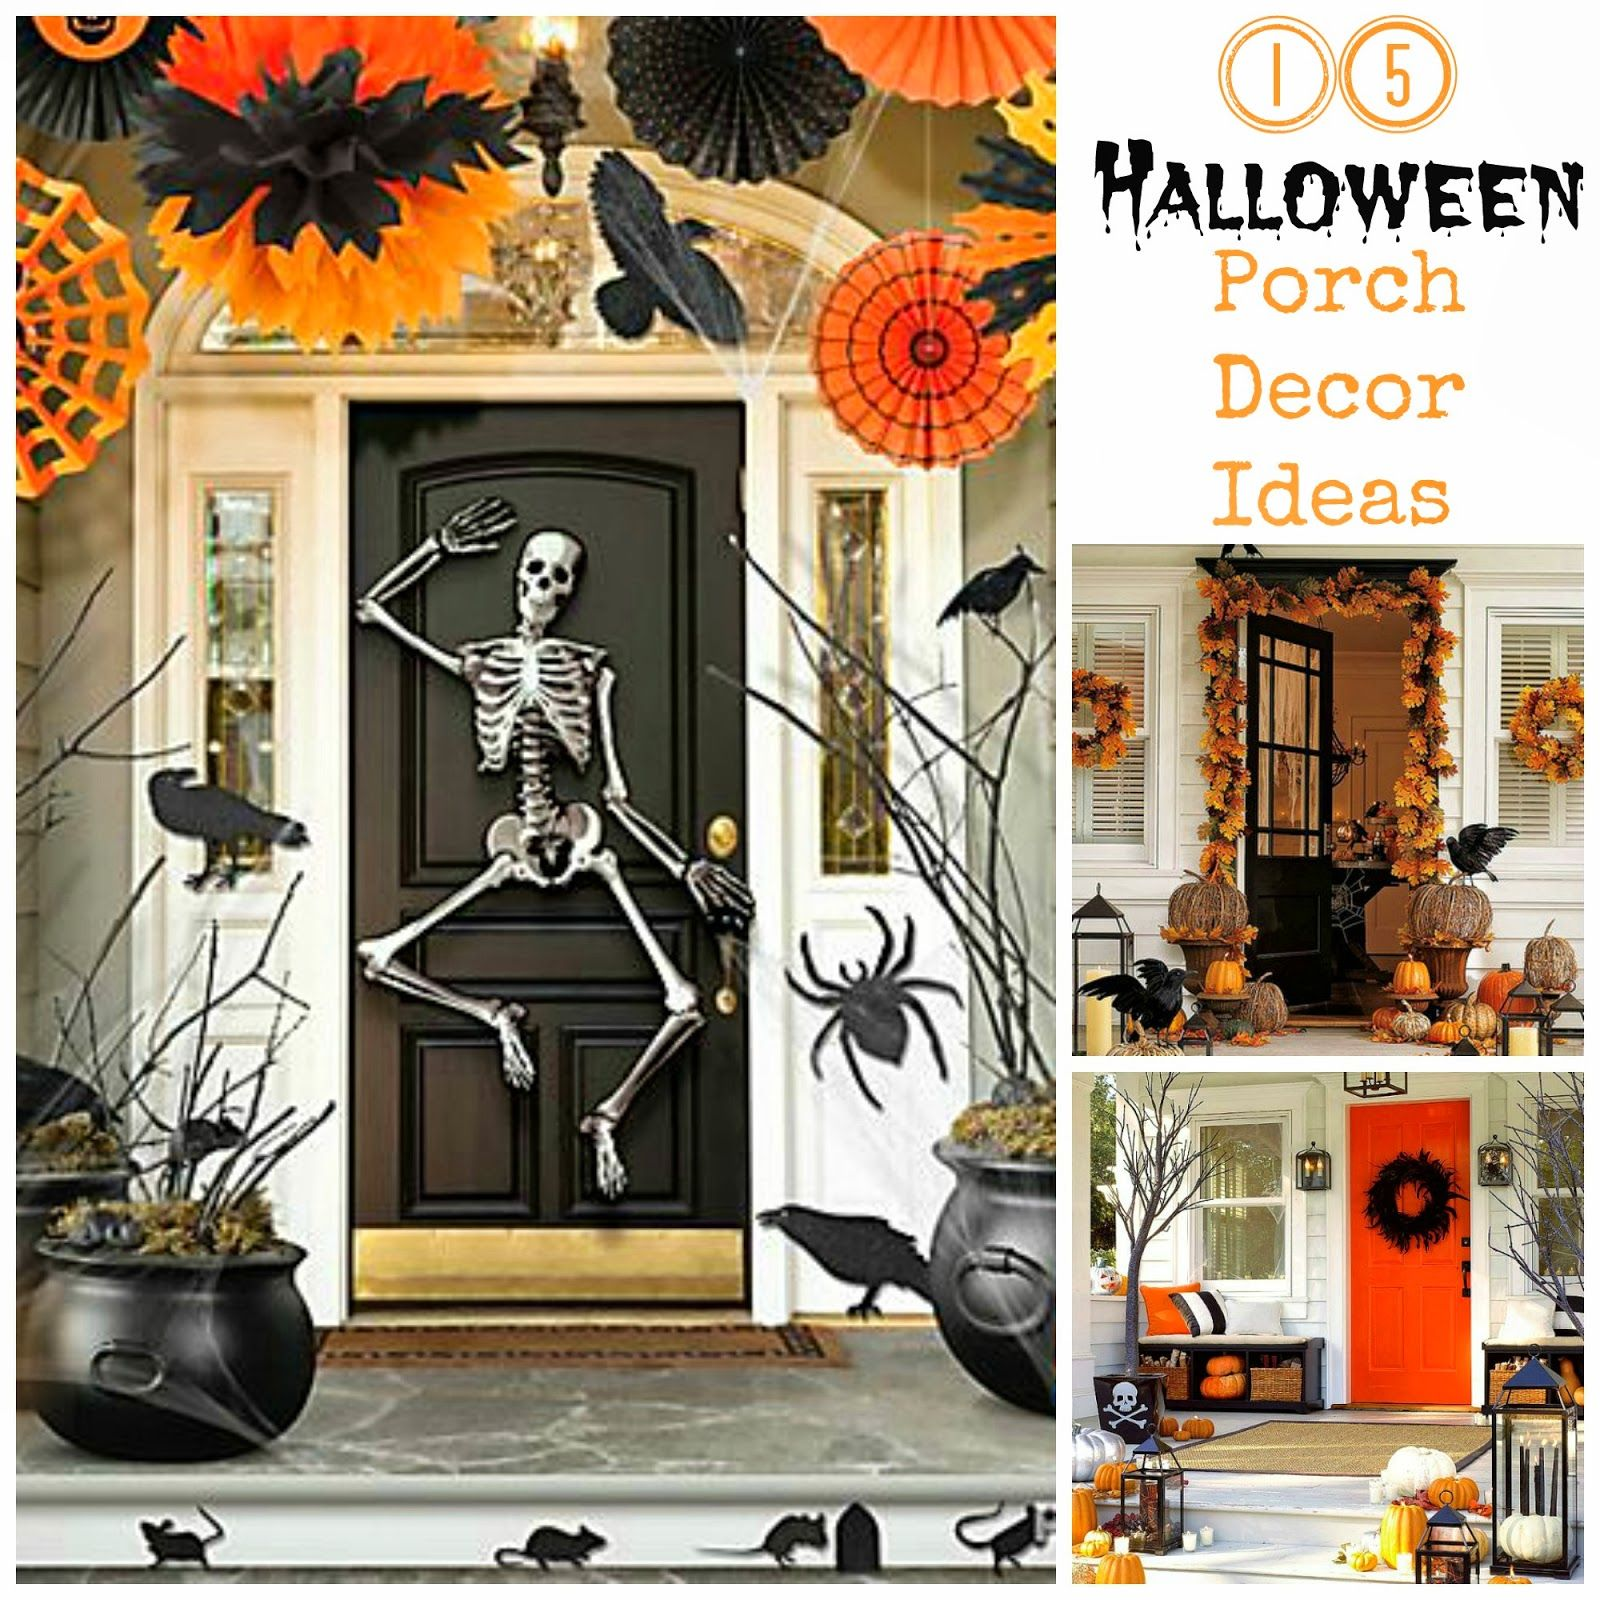 Halloween front garden ideas - A List Of Amazing Diy Halloween Decorations Find Outdoor Party Yard Or Kids Diy Halloween Decorations And Ideas From This Extensive List